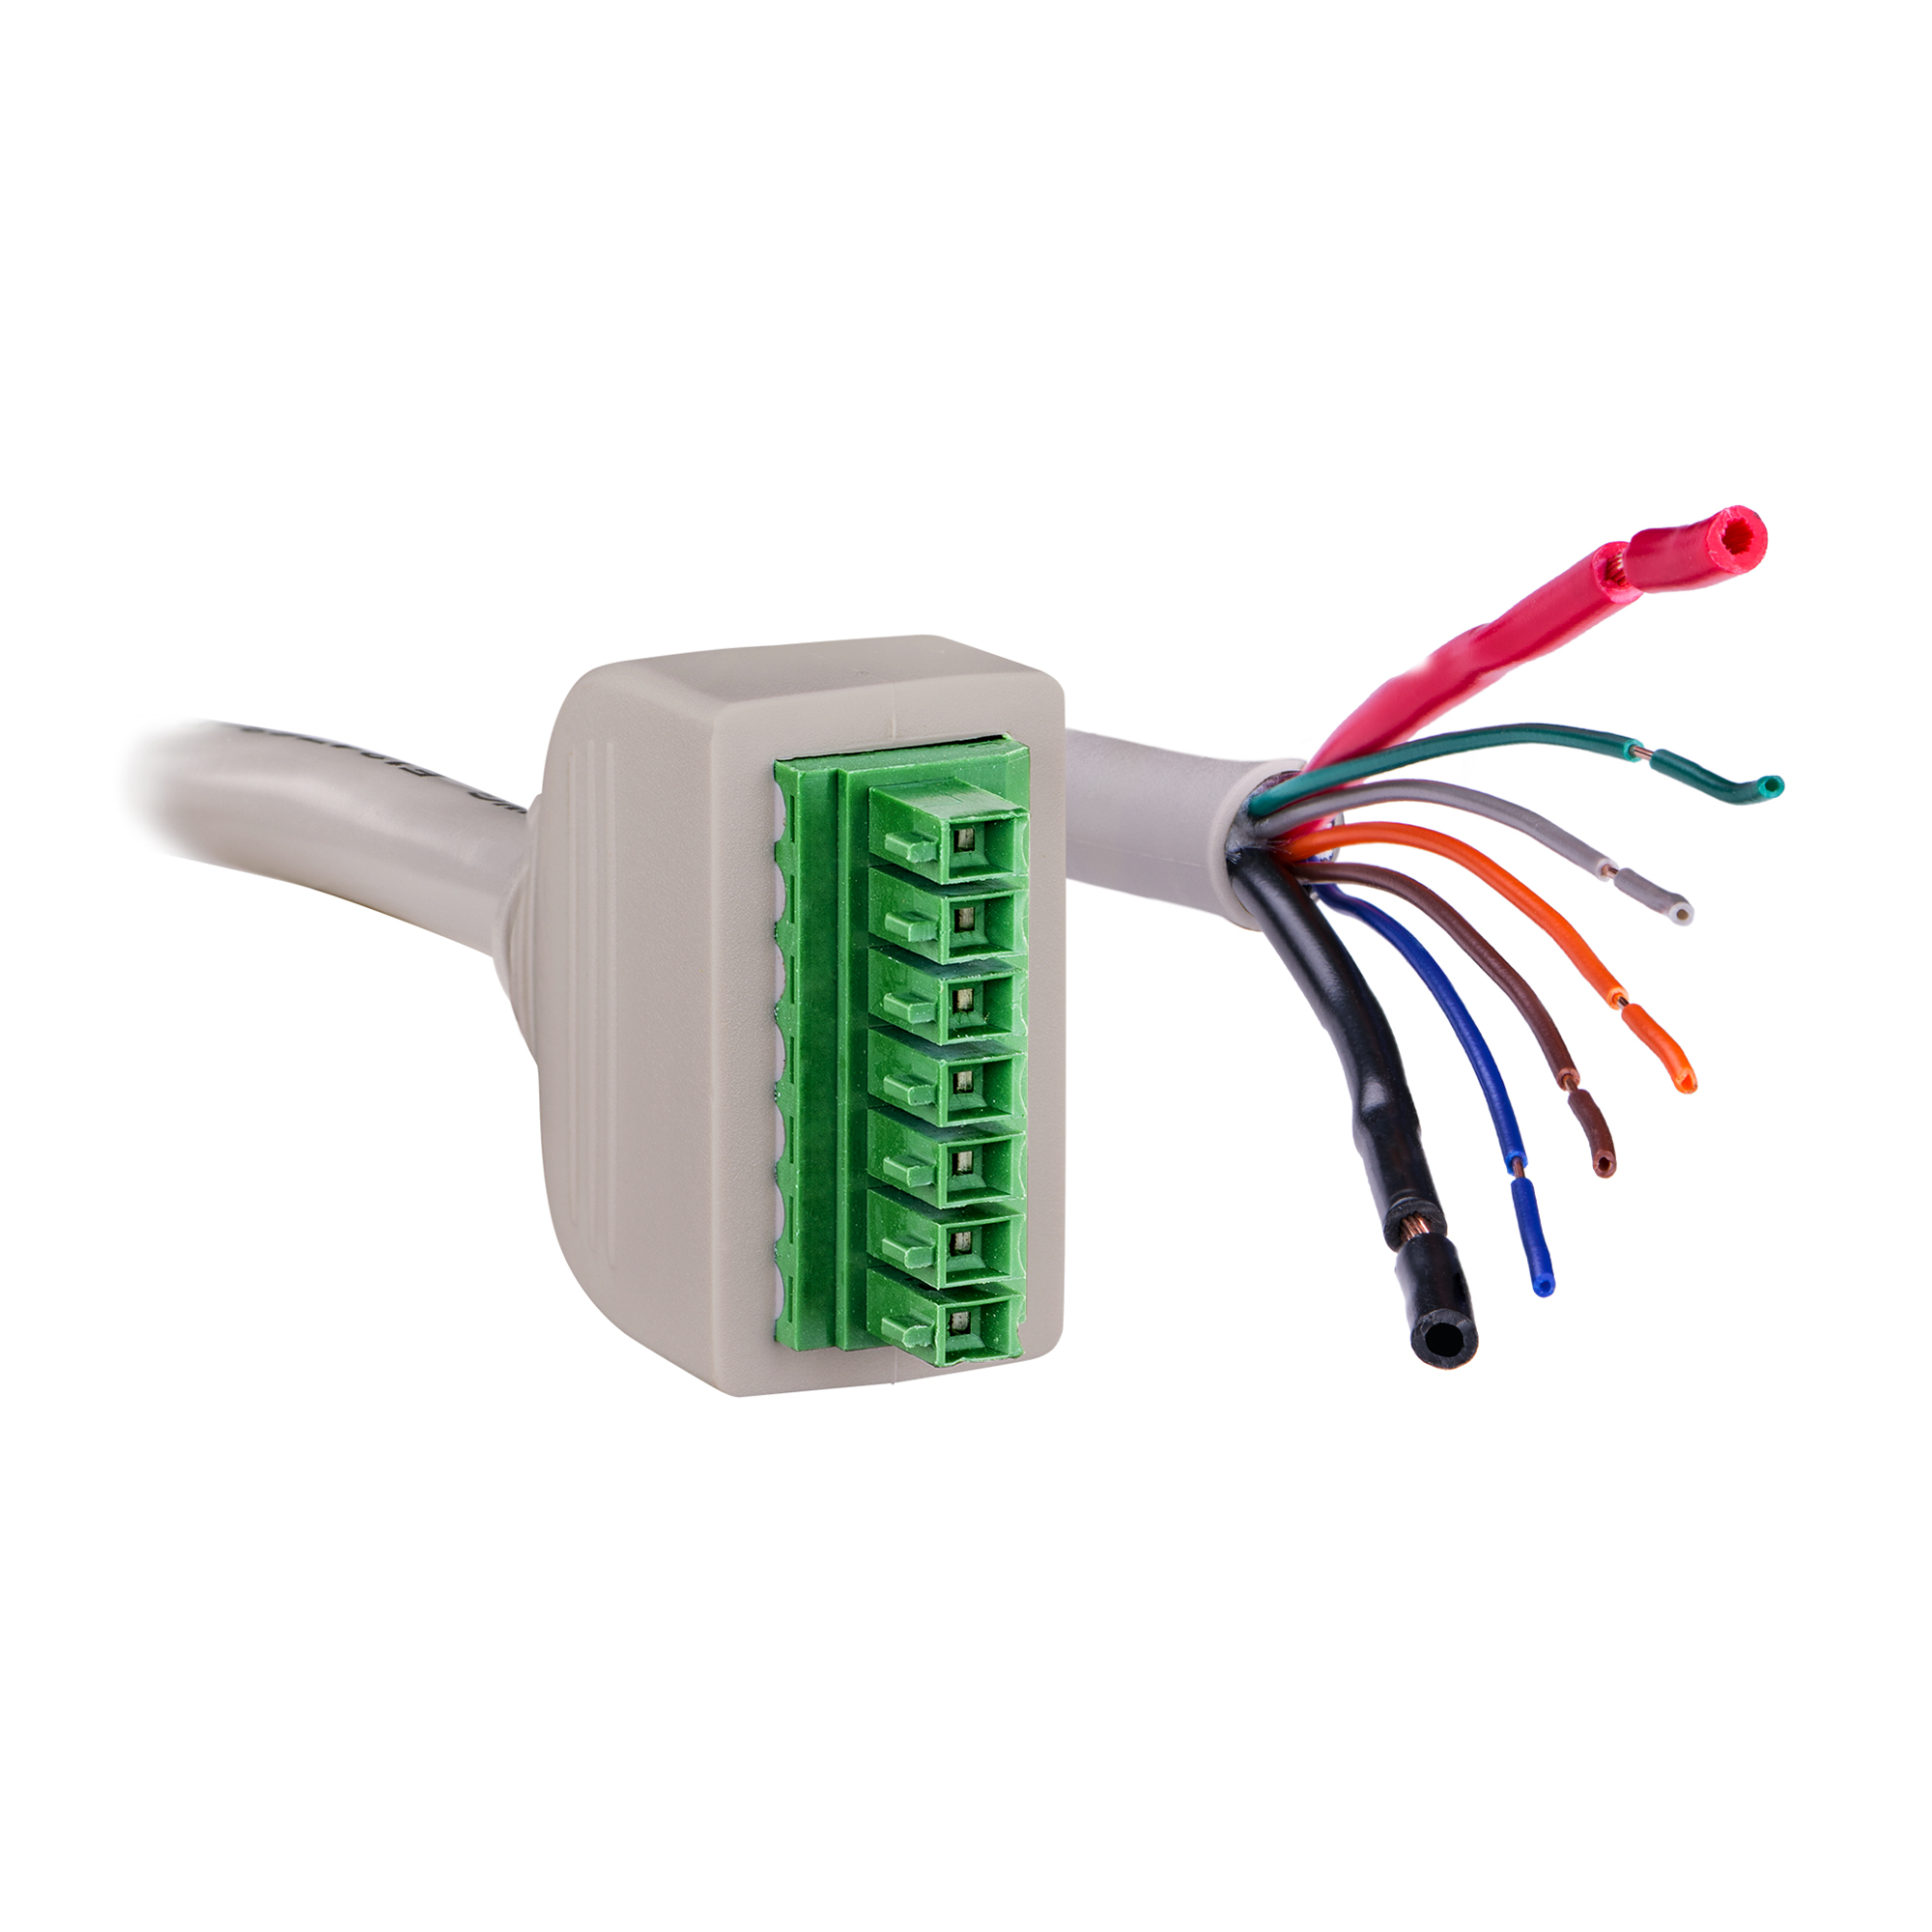 Where To Buy Cable Wire - Dolgular.com